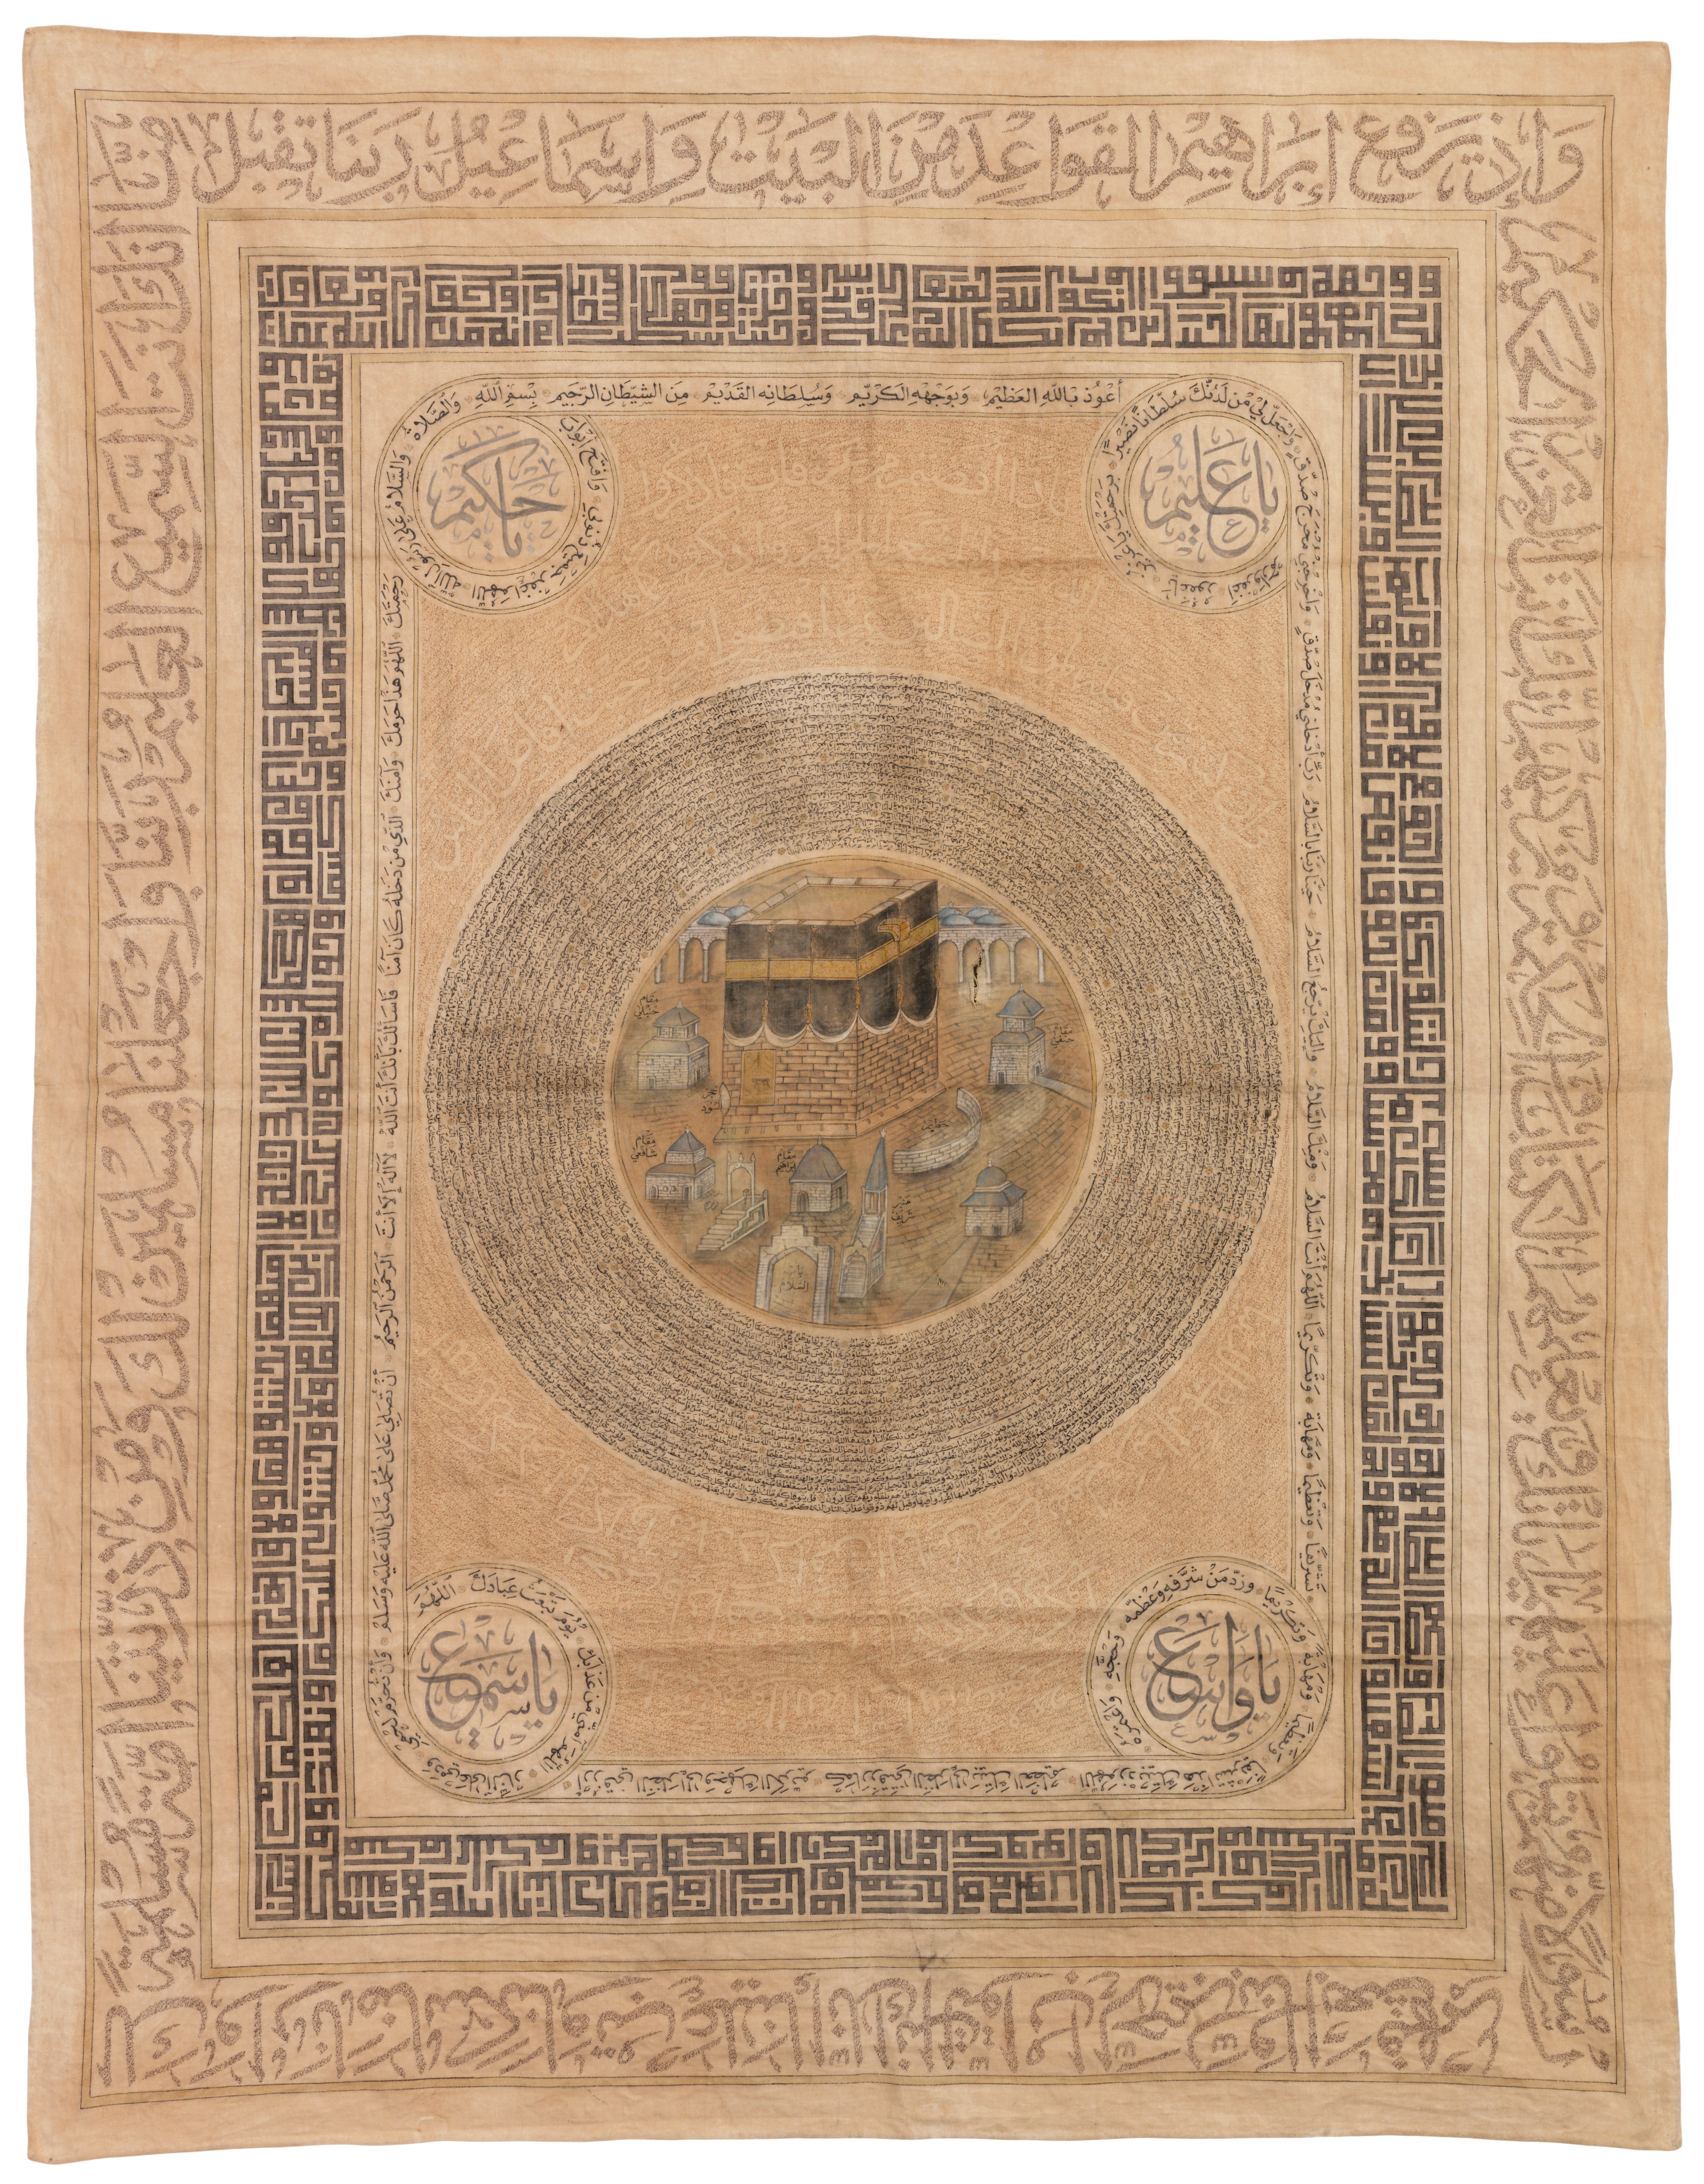 Calligraphic textile with Qur'anic verses and prayers, around a depiction of the Ka'bah